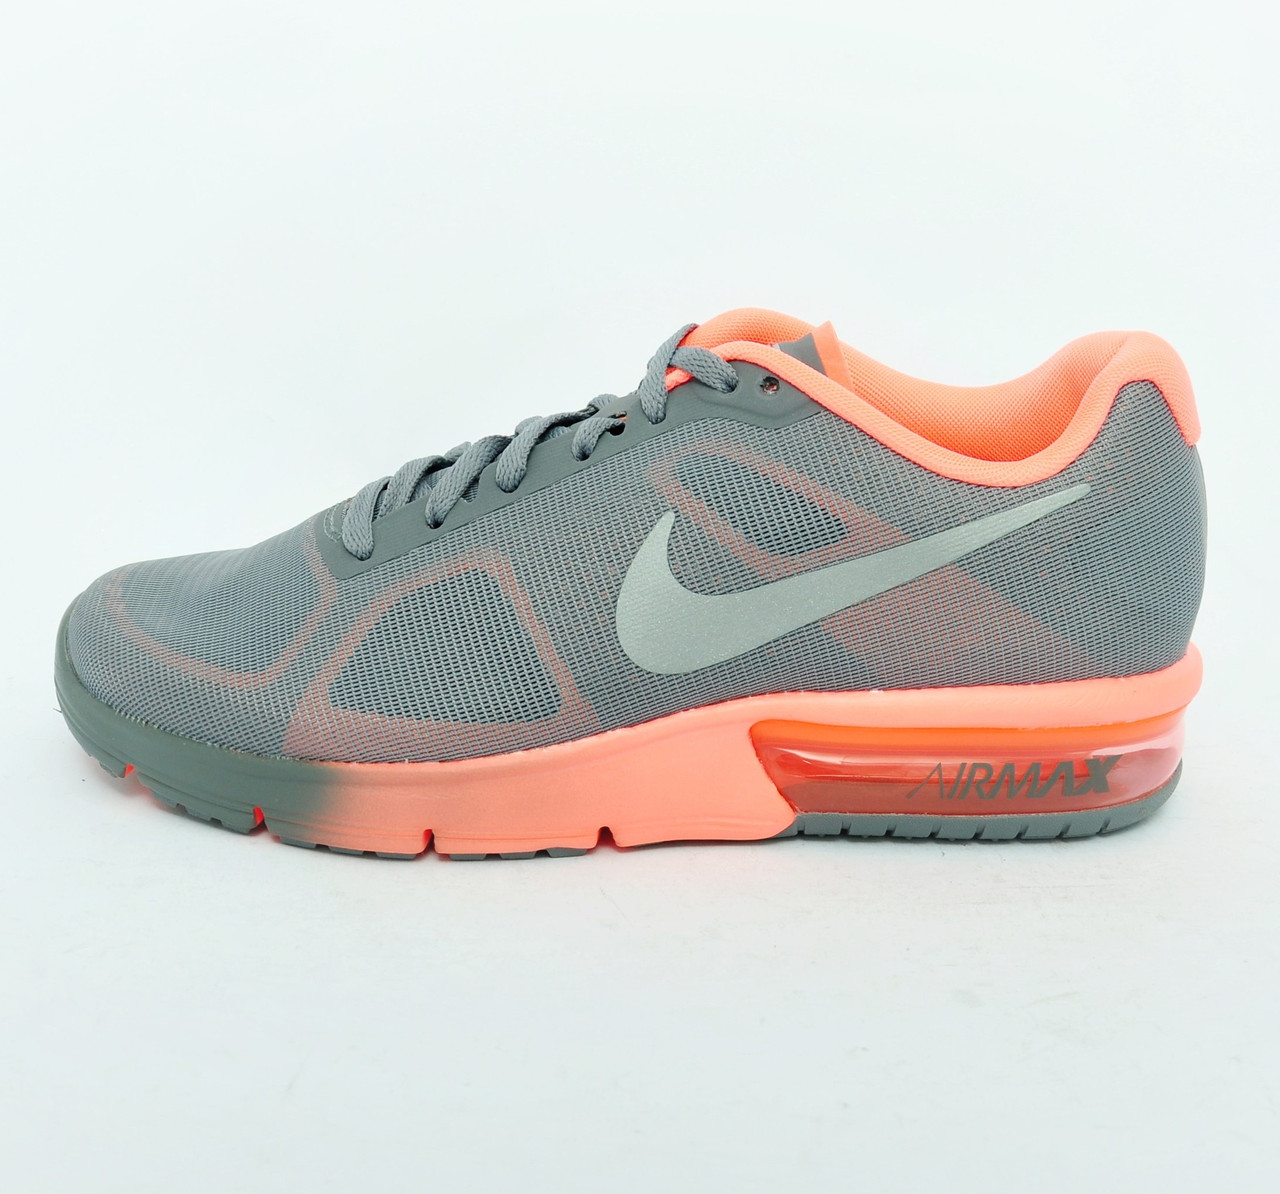 d54c93db Женские кроссовки Nike Air Max Sequent Womens 719916-011 - Интернет-магазин